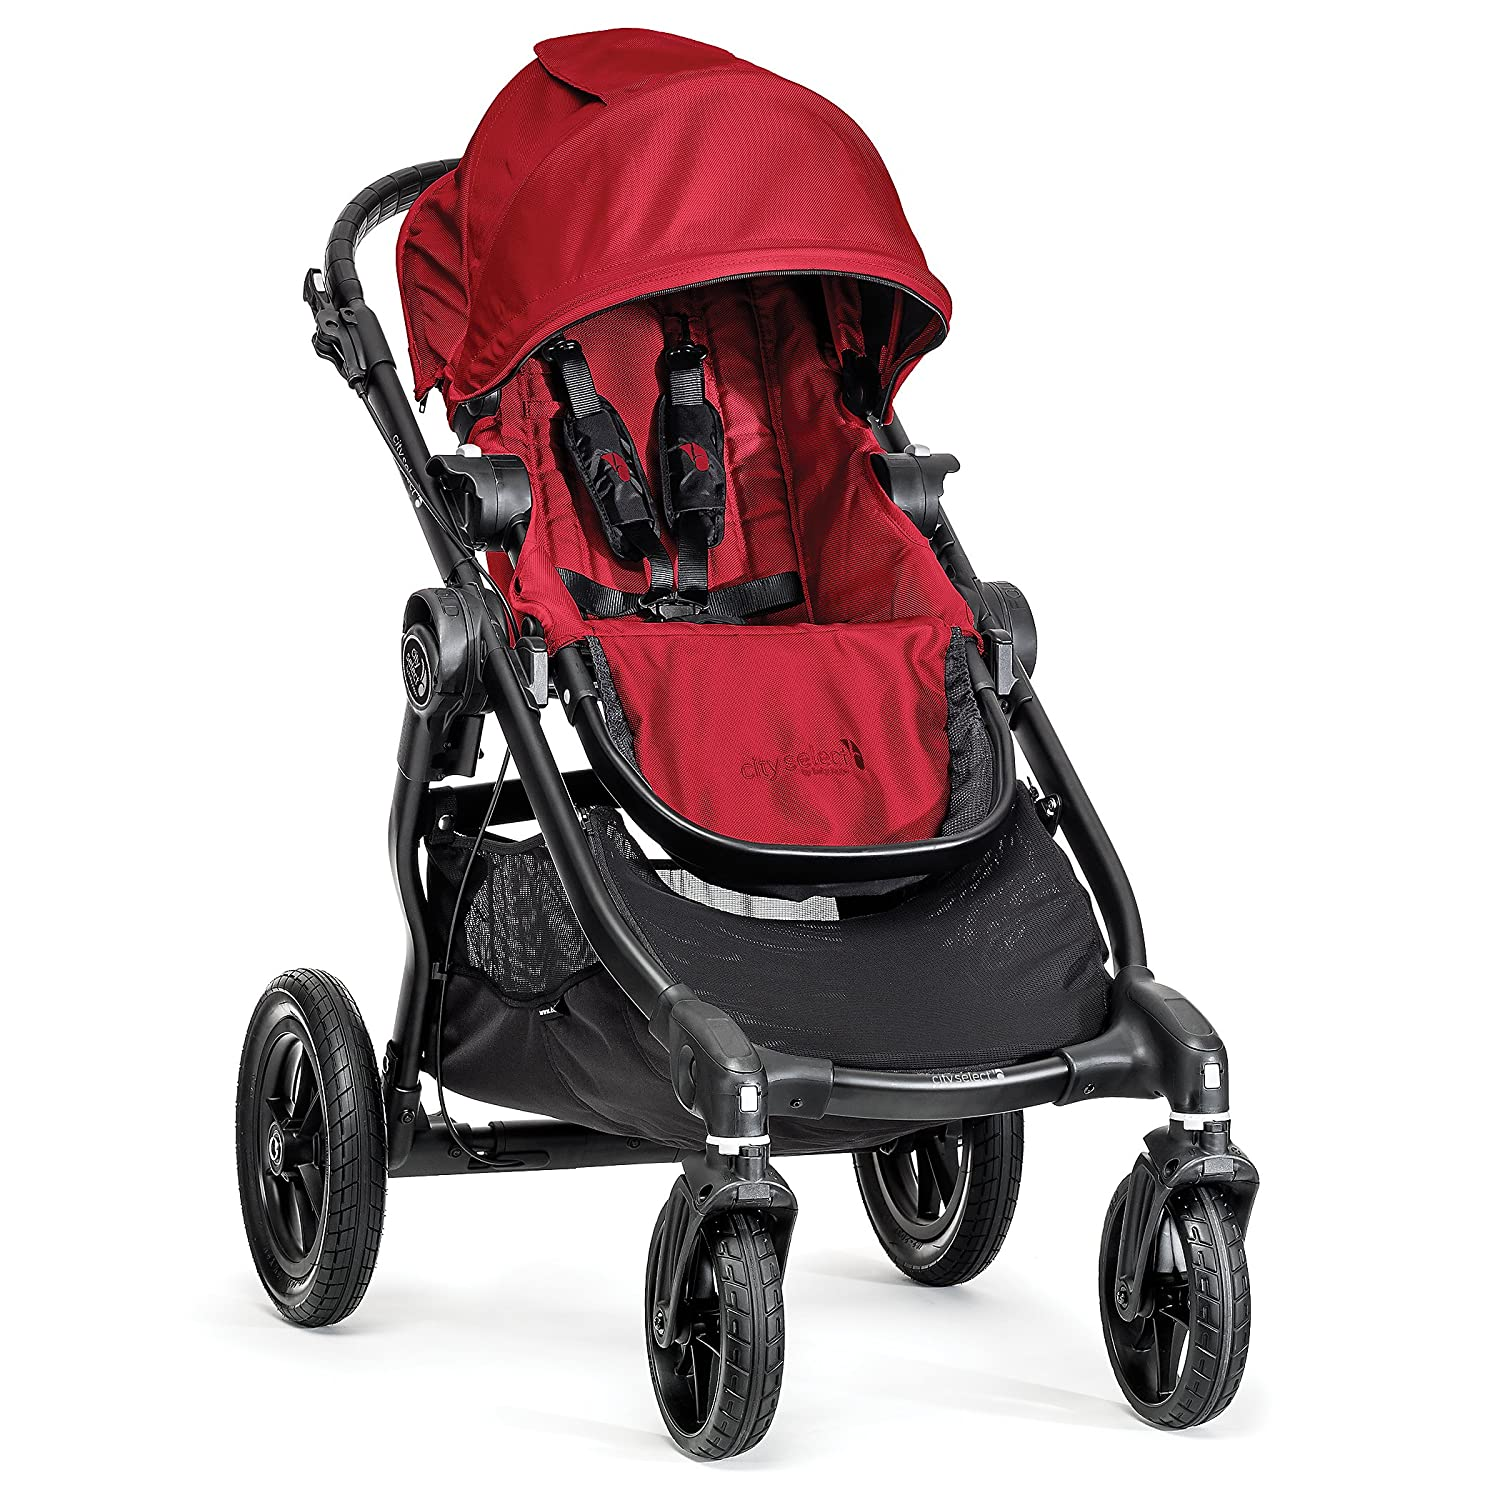 Baby Jogger City Select Stroller – 2018 Baby Stroller with 16 Ways to Ride, Goes from Single to Double Stroller Quick Fold Stroller, Red